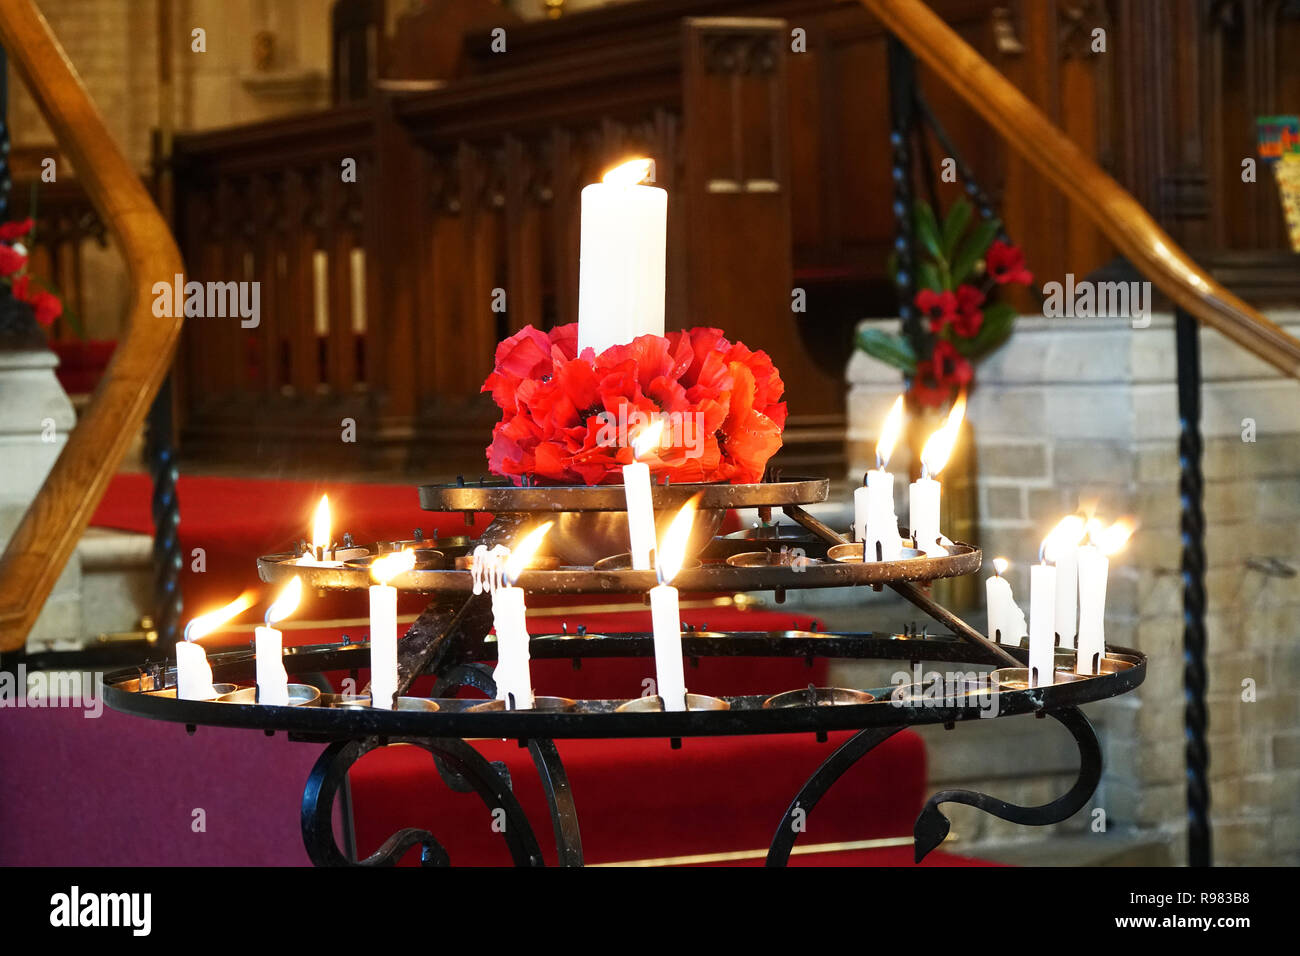 Memorial or voltive candles in a church for a service of remembrance - Stock Image